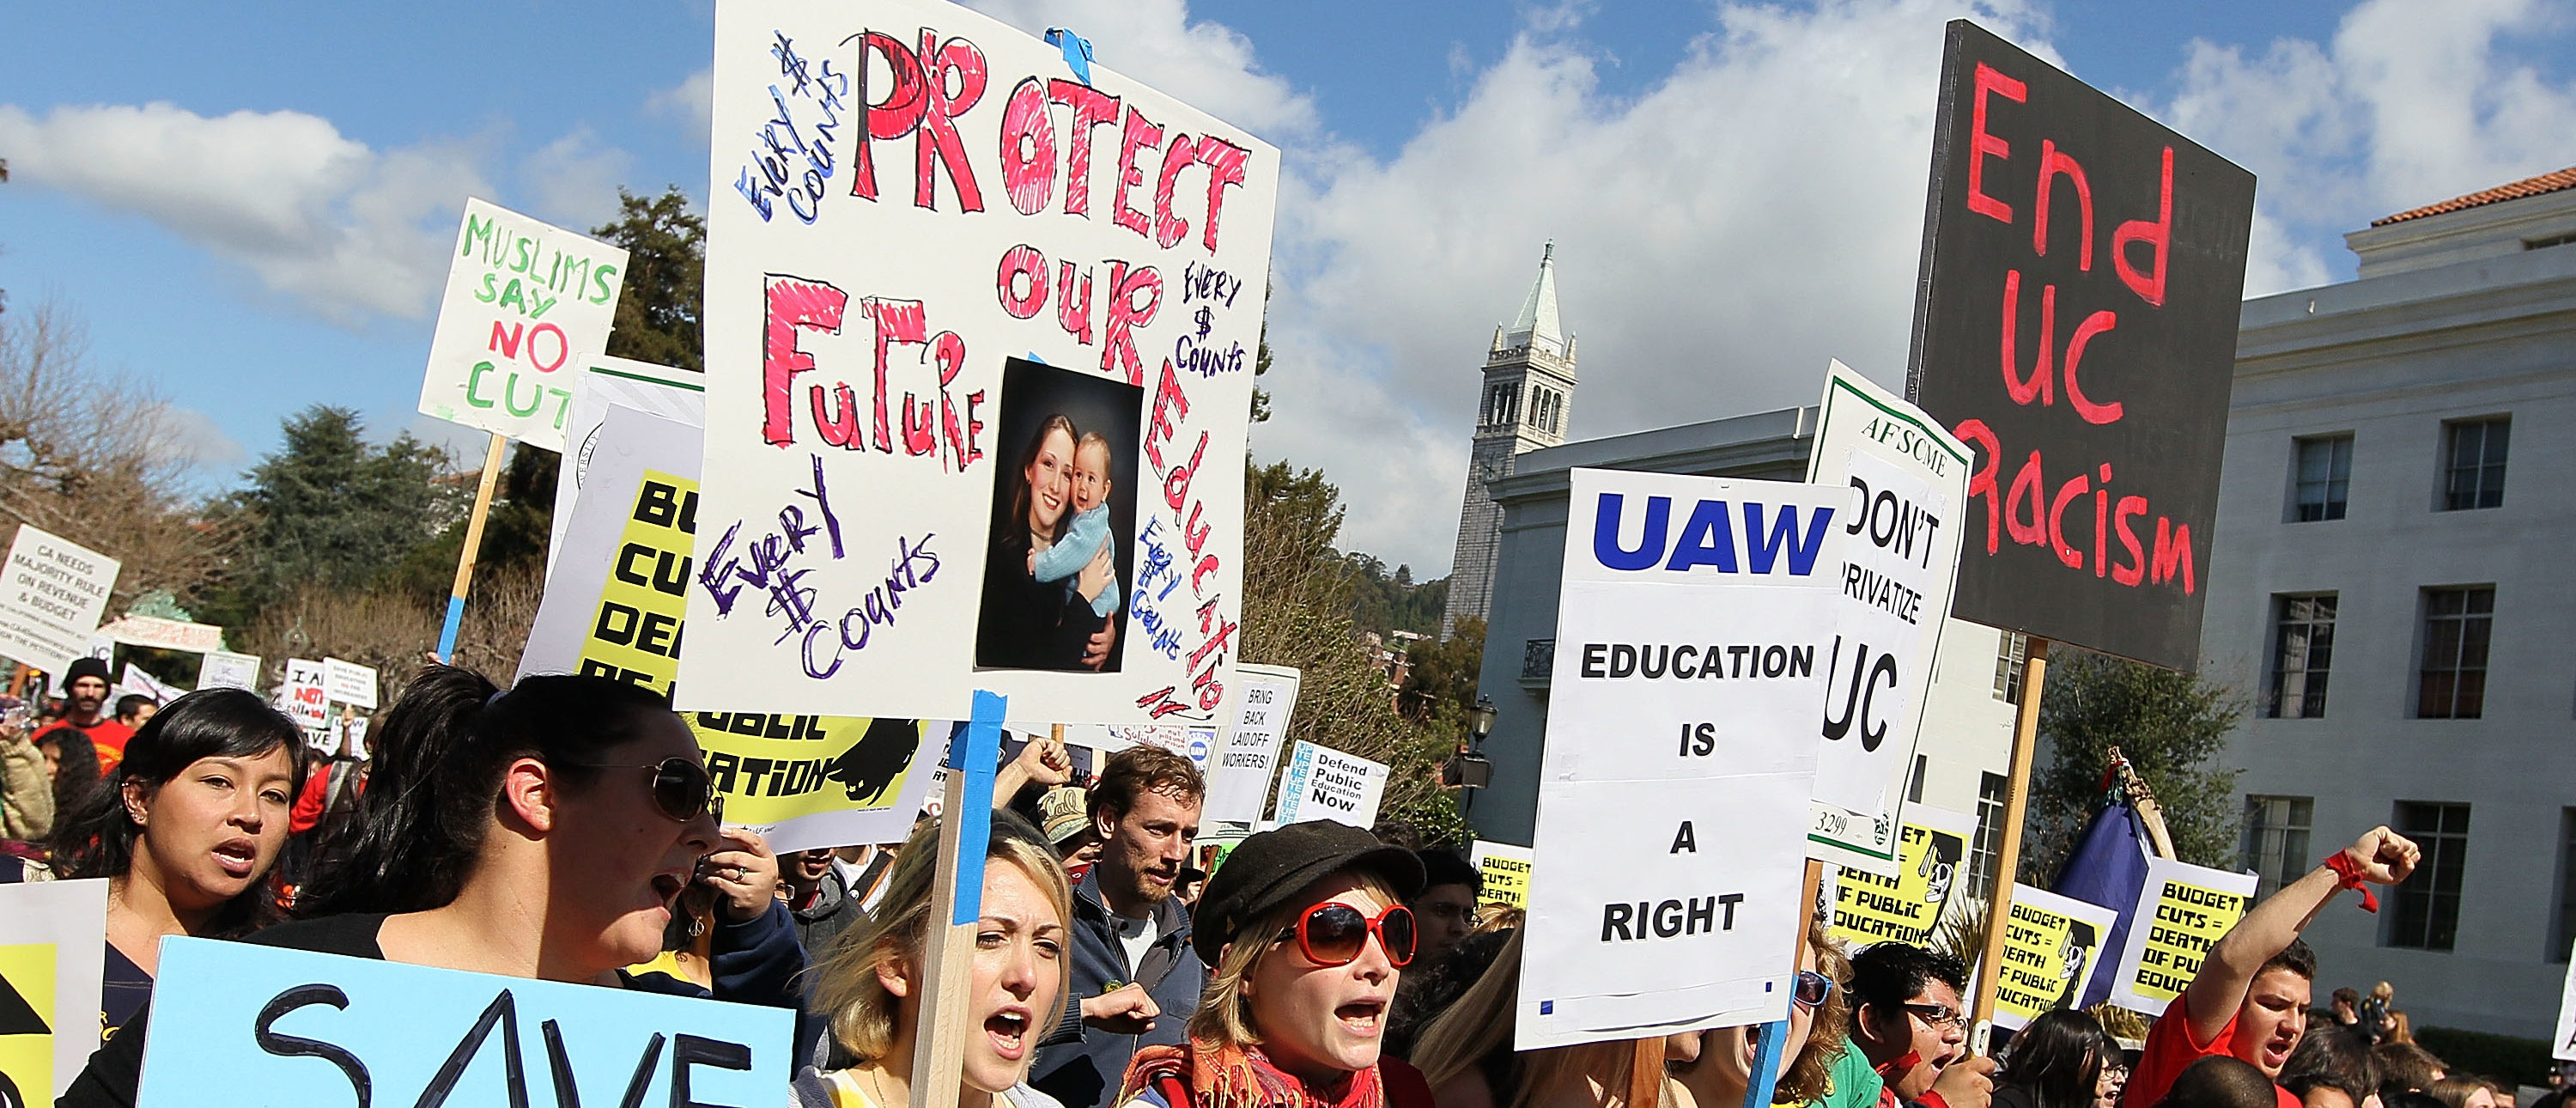 BERKELEY, CA - MARCH 04: Students at UC Berkeley carry signs as they march through campus during a national day of action against funding cuts and tuition increases March 4, 2010 in Berkeley, California. Students across the country are walking out of classes and holding demonstrations against massive tuition increases and funding cuts to college universities. (Photo by Justin Sullivan/Getty Images)